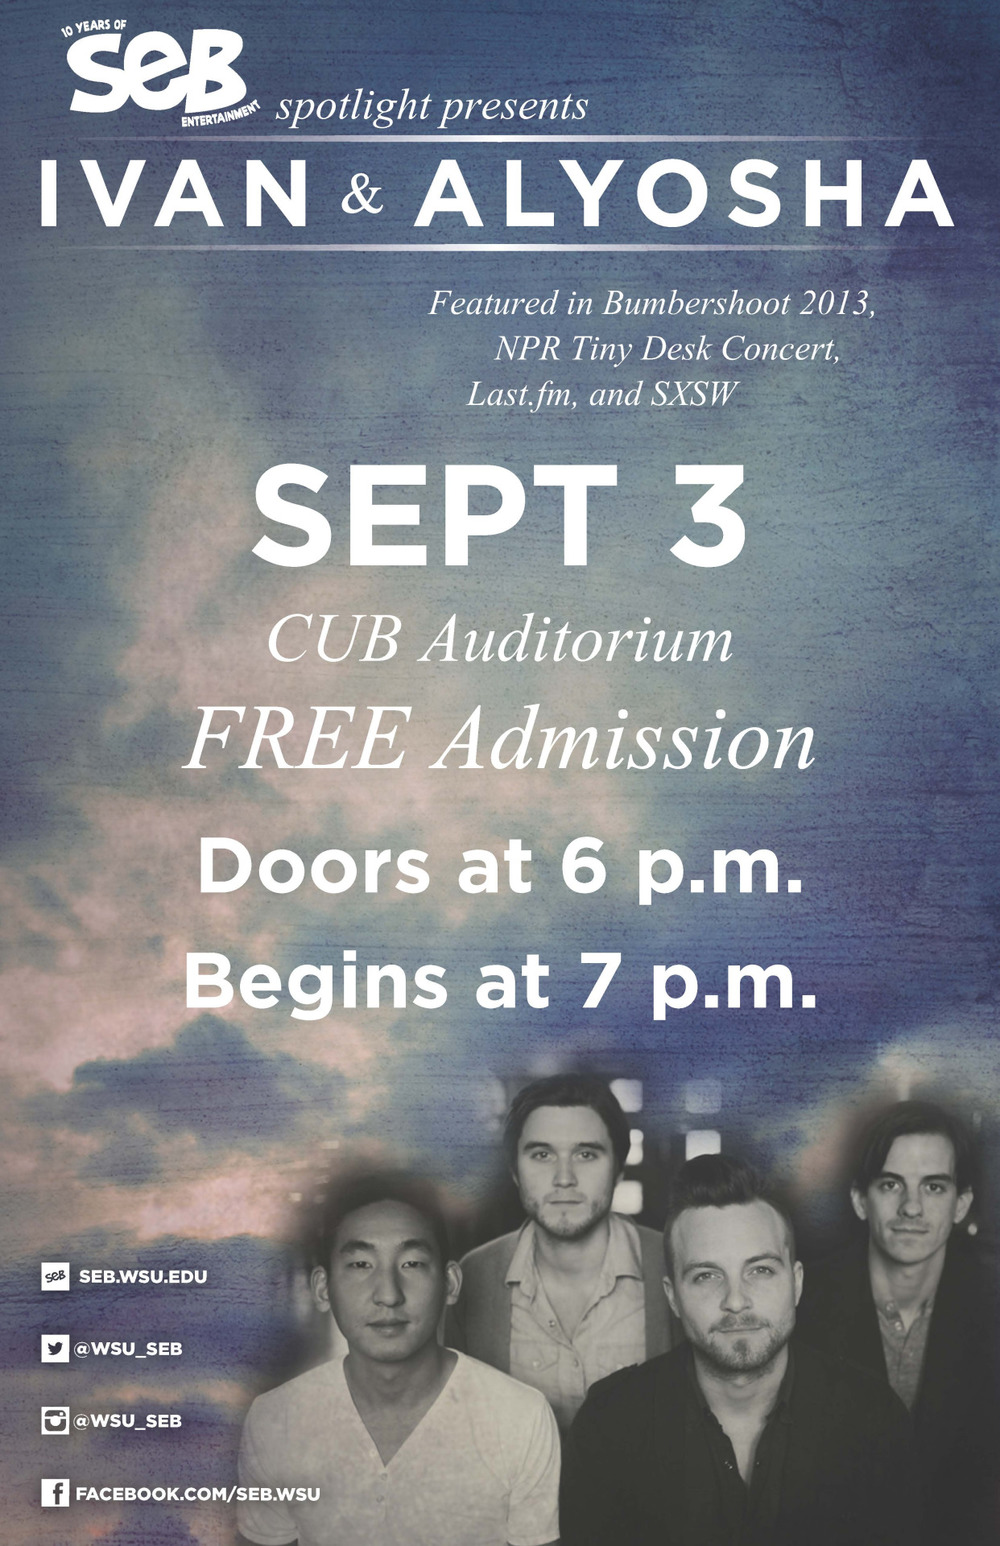 Guess who's playing a FREE show today?! We are! All are welcome to our show at Washington State University tonight at 7pm at CUB Auditorium. WSU students, that's perfect timing for a study break!